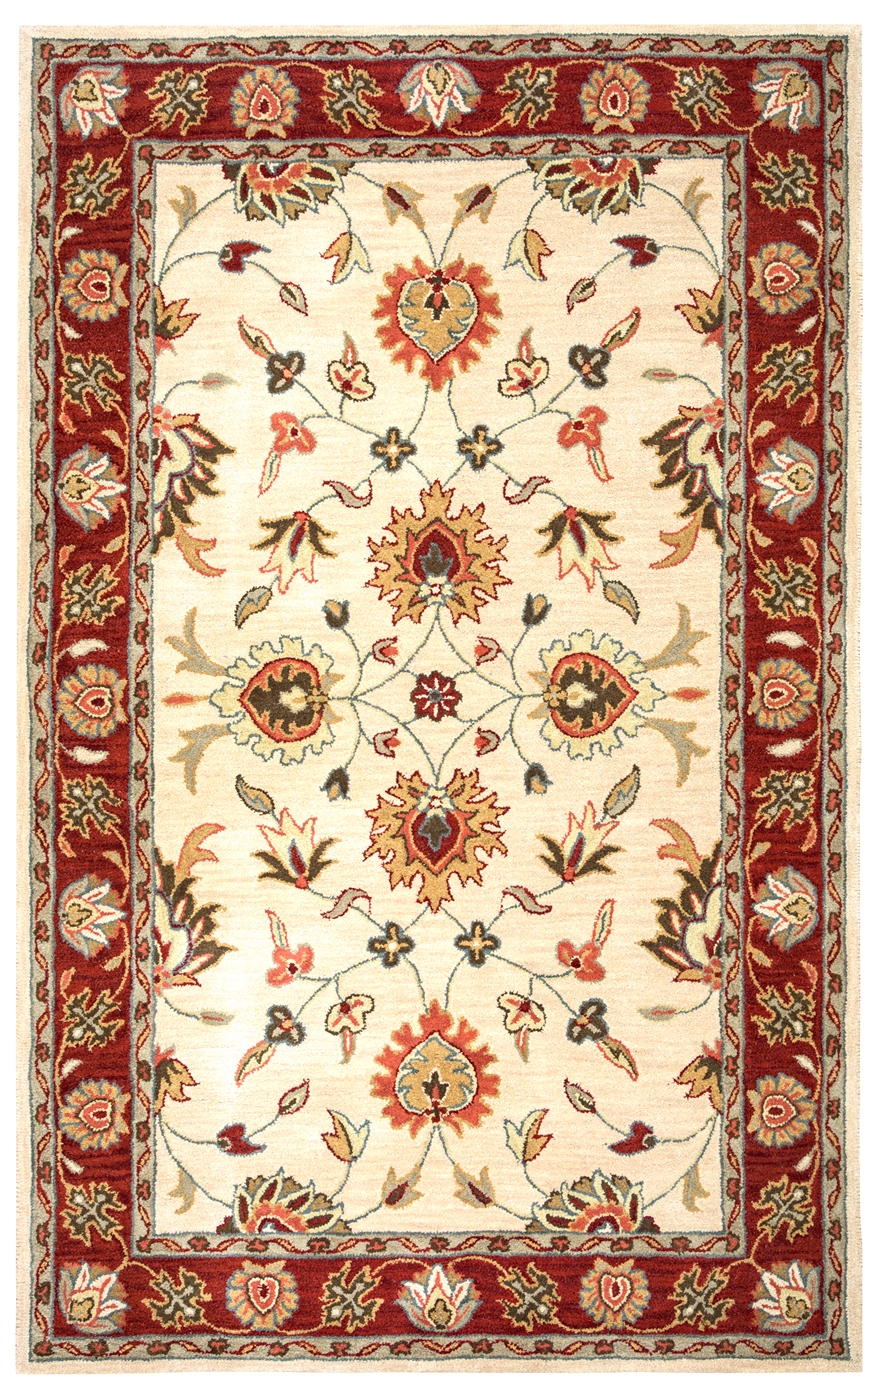 Valintino ornate floral border wool area rug in beige red for Red and navy rug